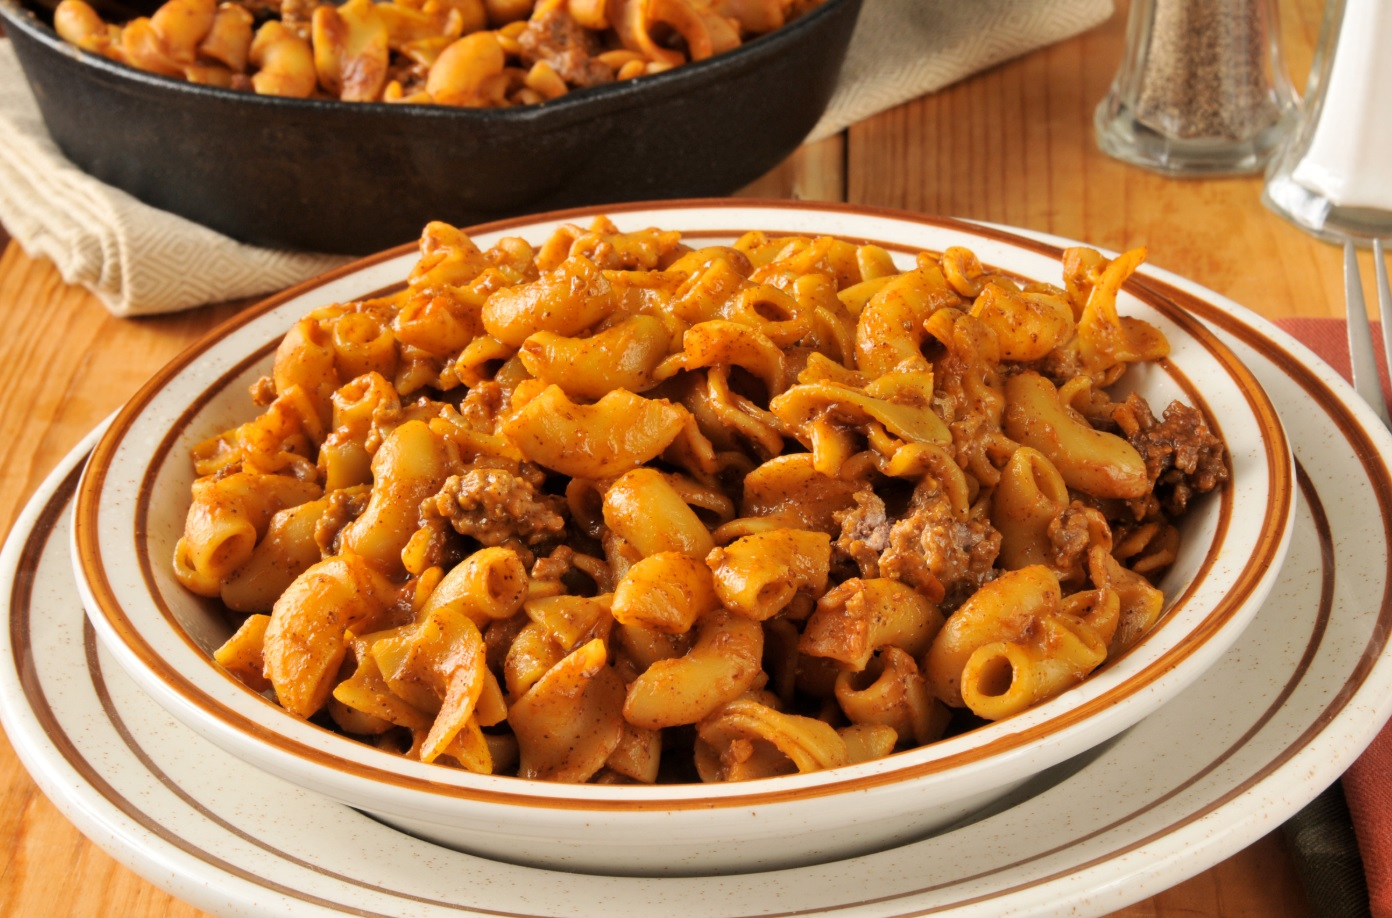 Easy Dinner: Silly Chili Macaroni